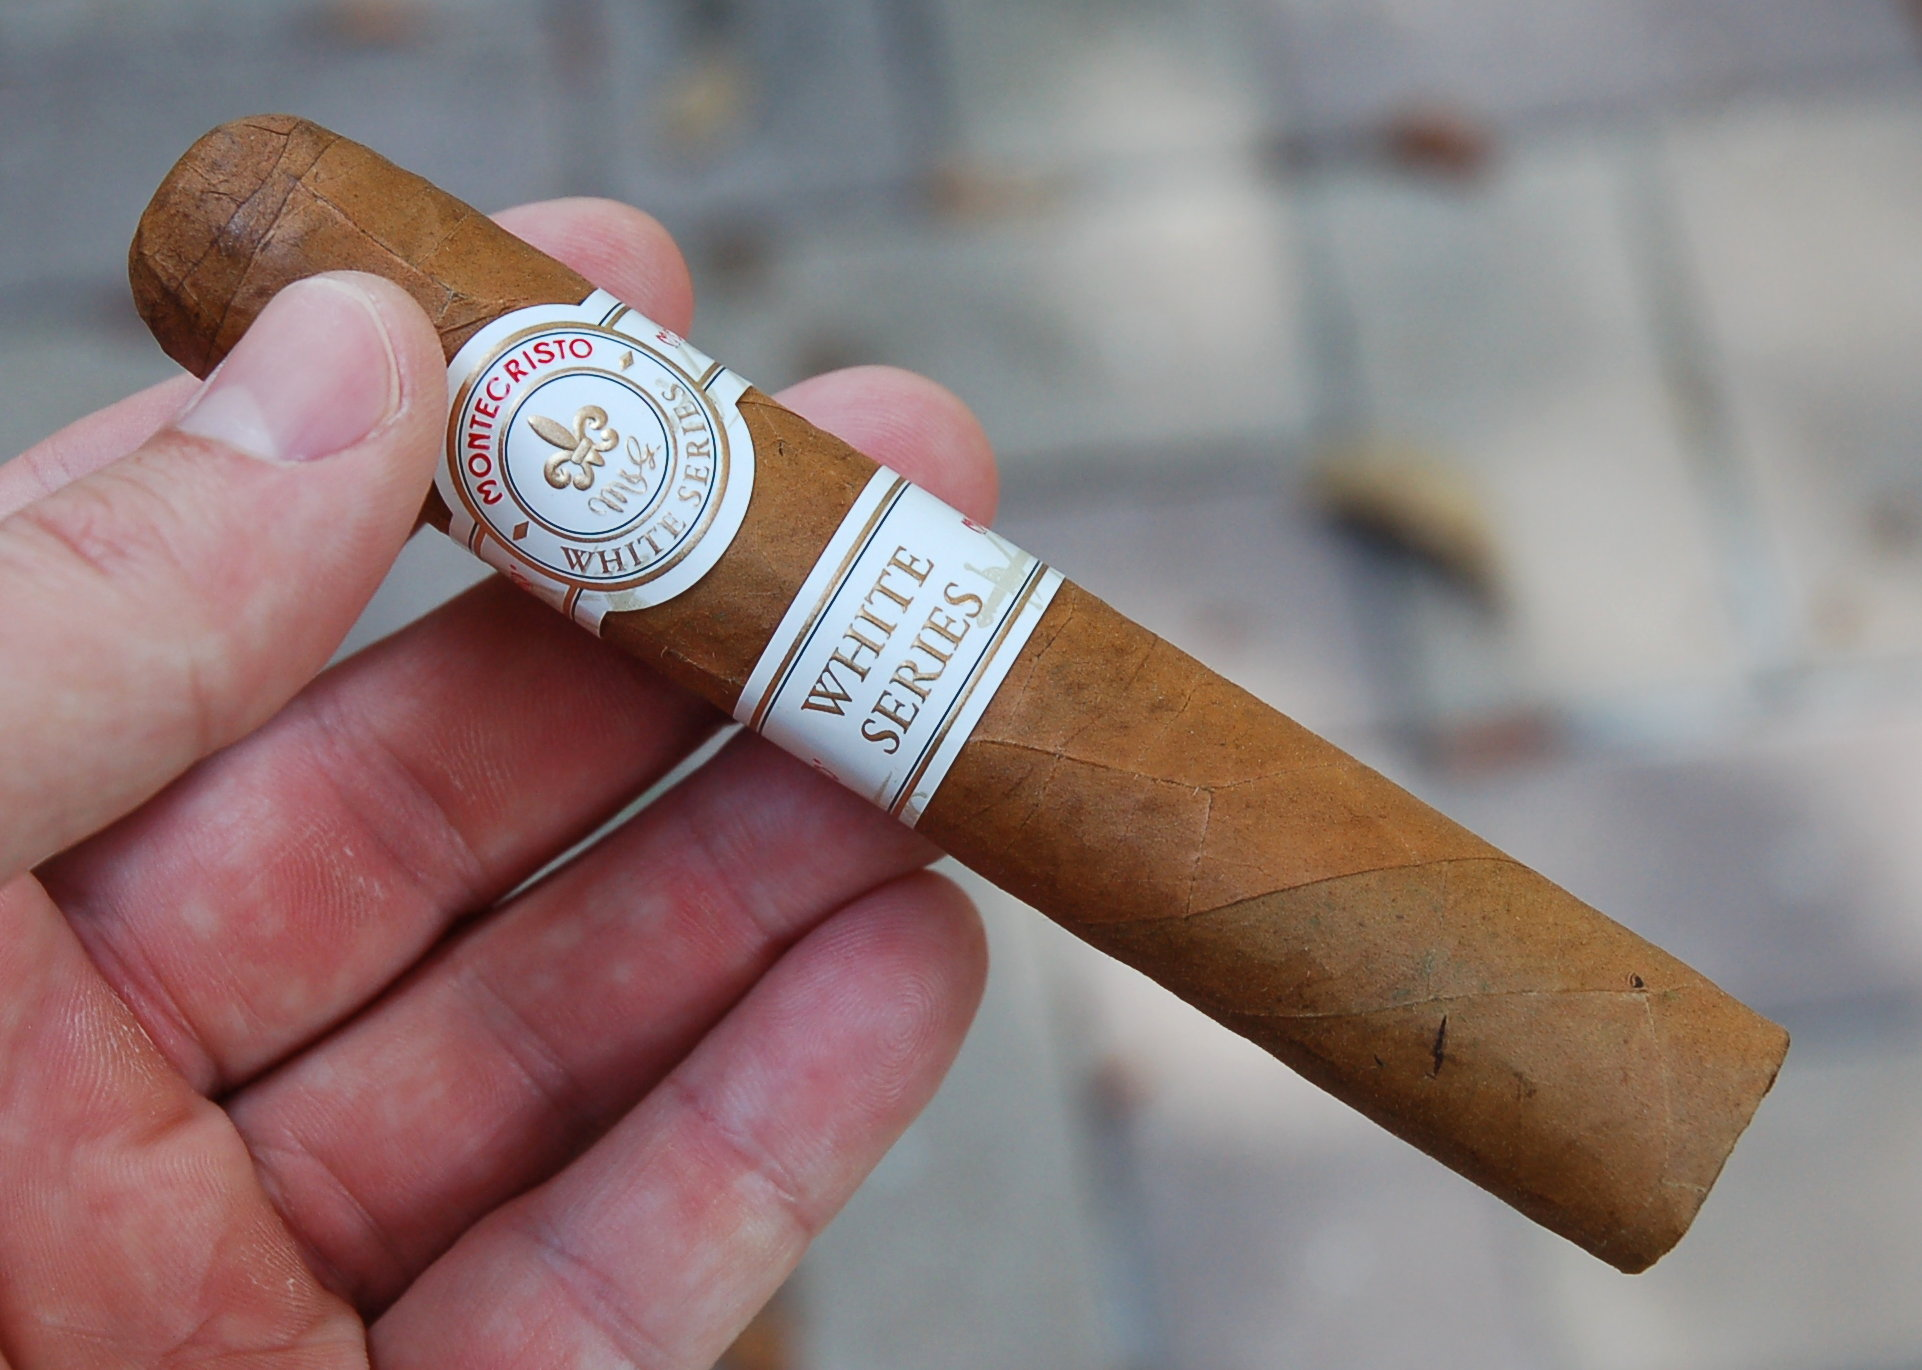 Montecristo White Series in Hand